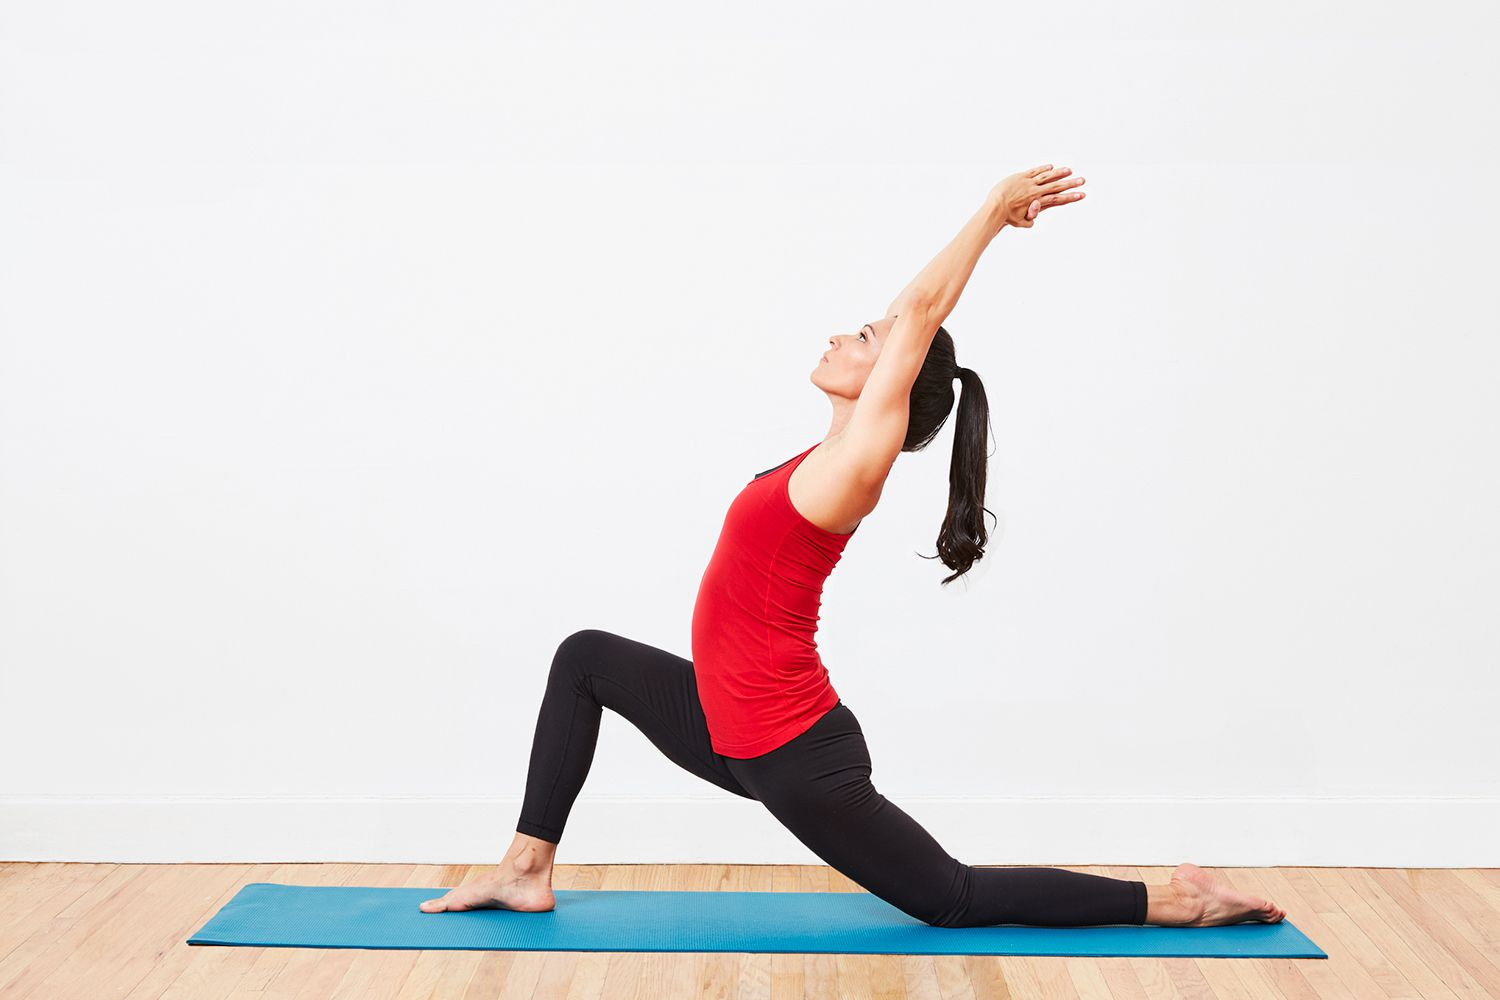 Yoga Poses That Stretch Your Quads